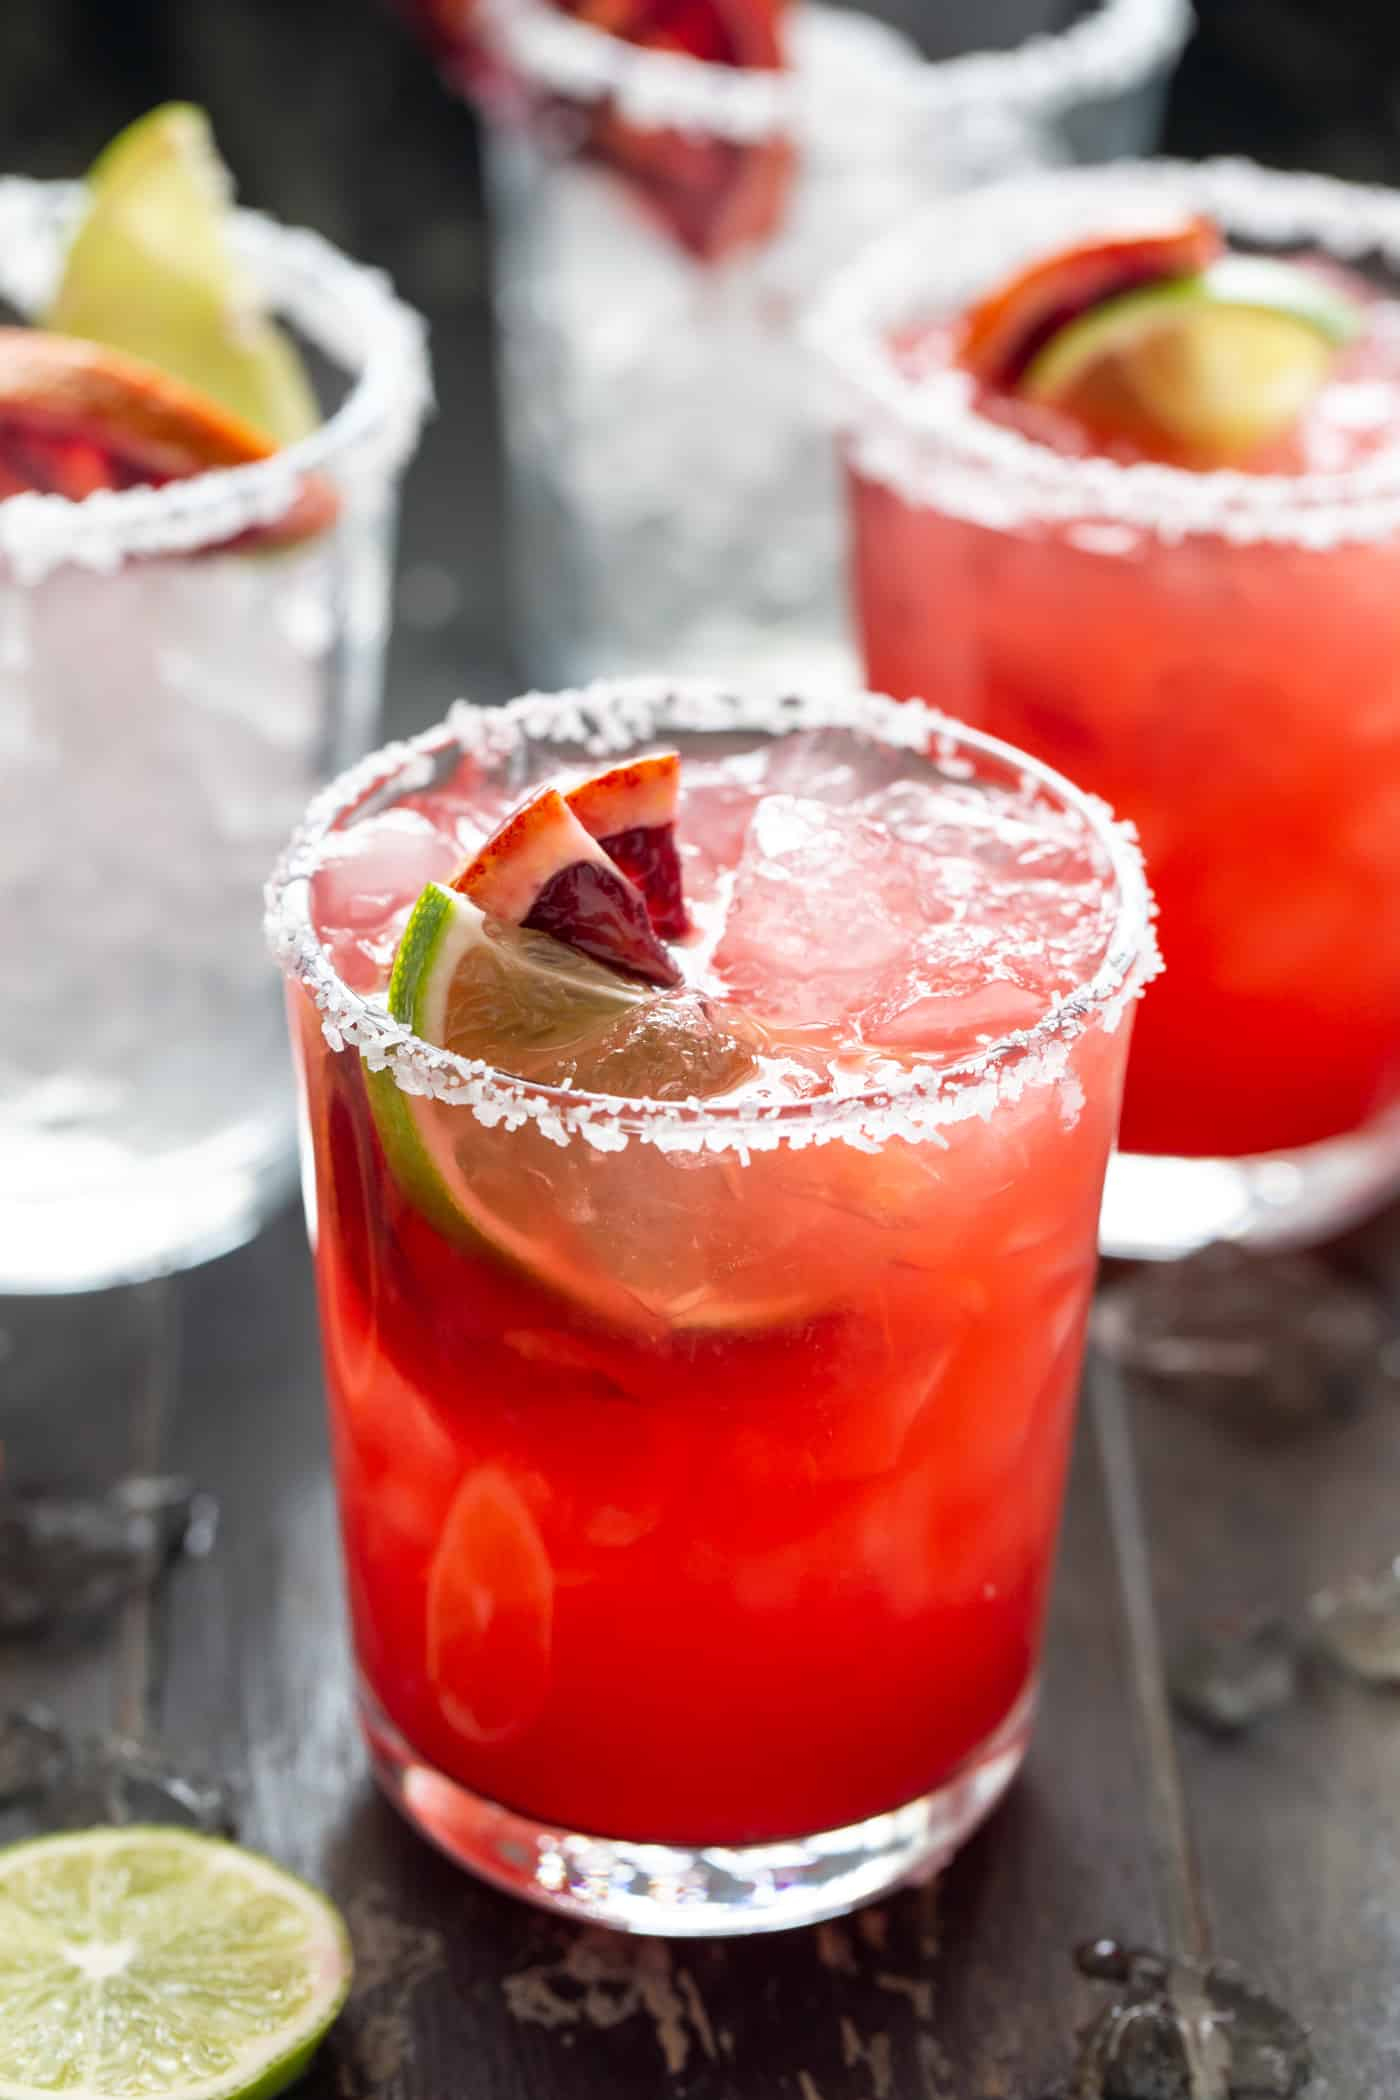 Lowball glasses filled with Blood Orange Margaritas. Garnished with a salt rim and fresh lime and blood orange slices.